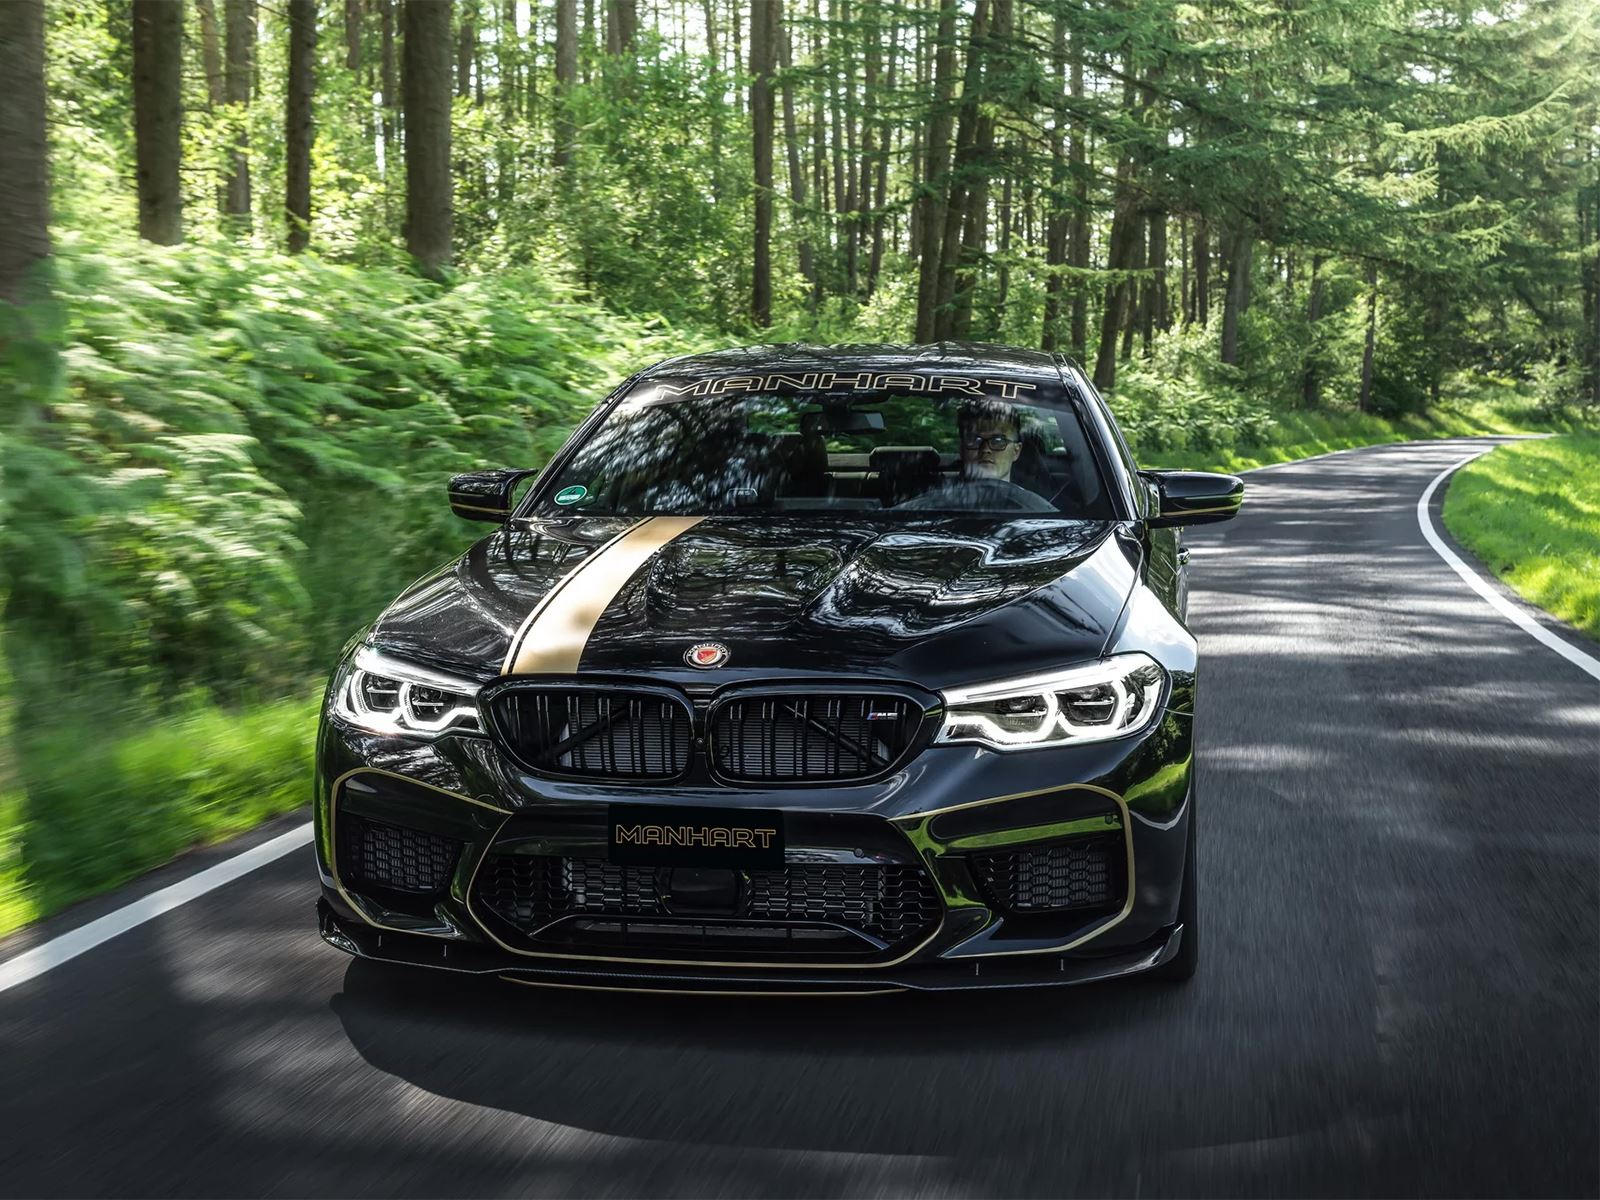 Tuner Transforms New Bmw M5 Into A 720 Hp Monster Carbuzz